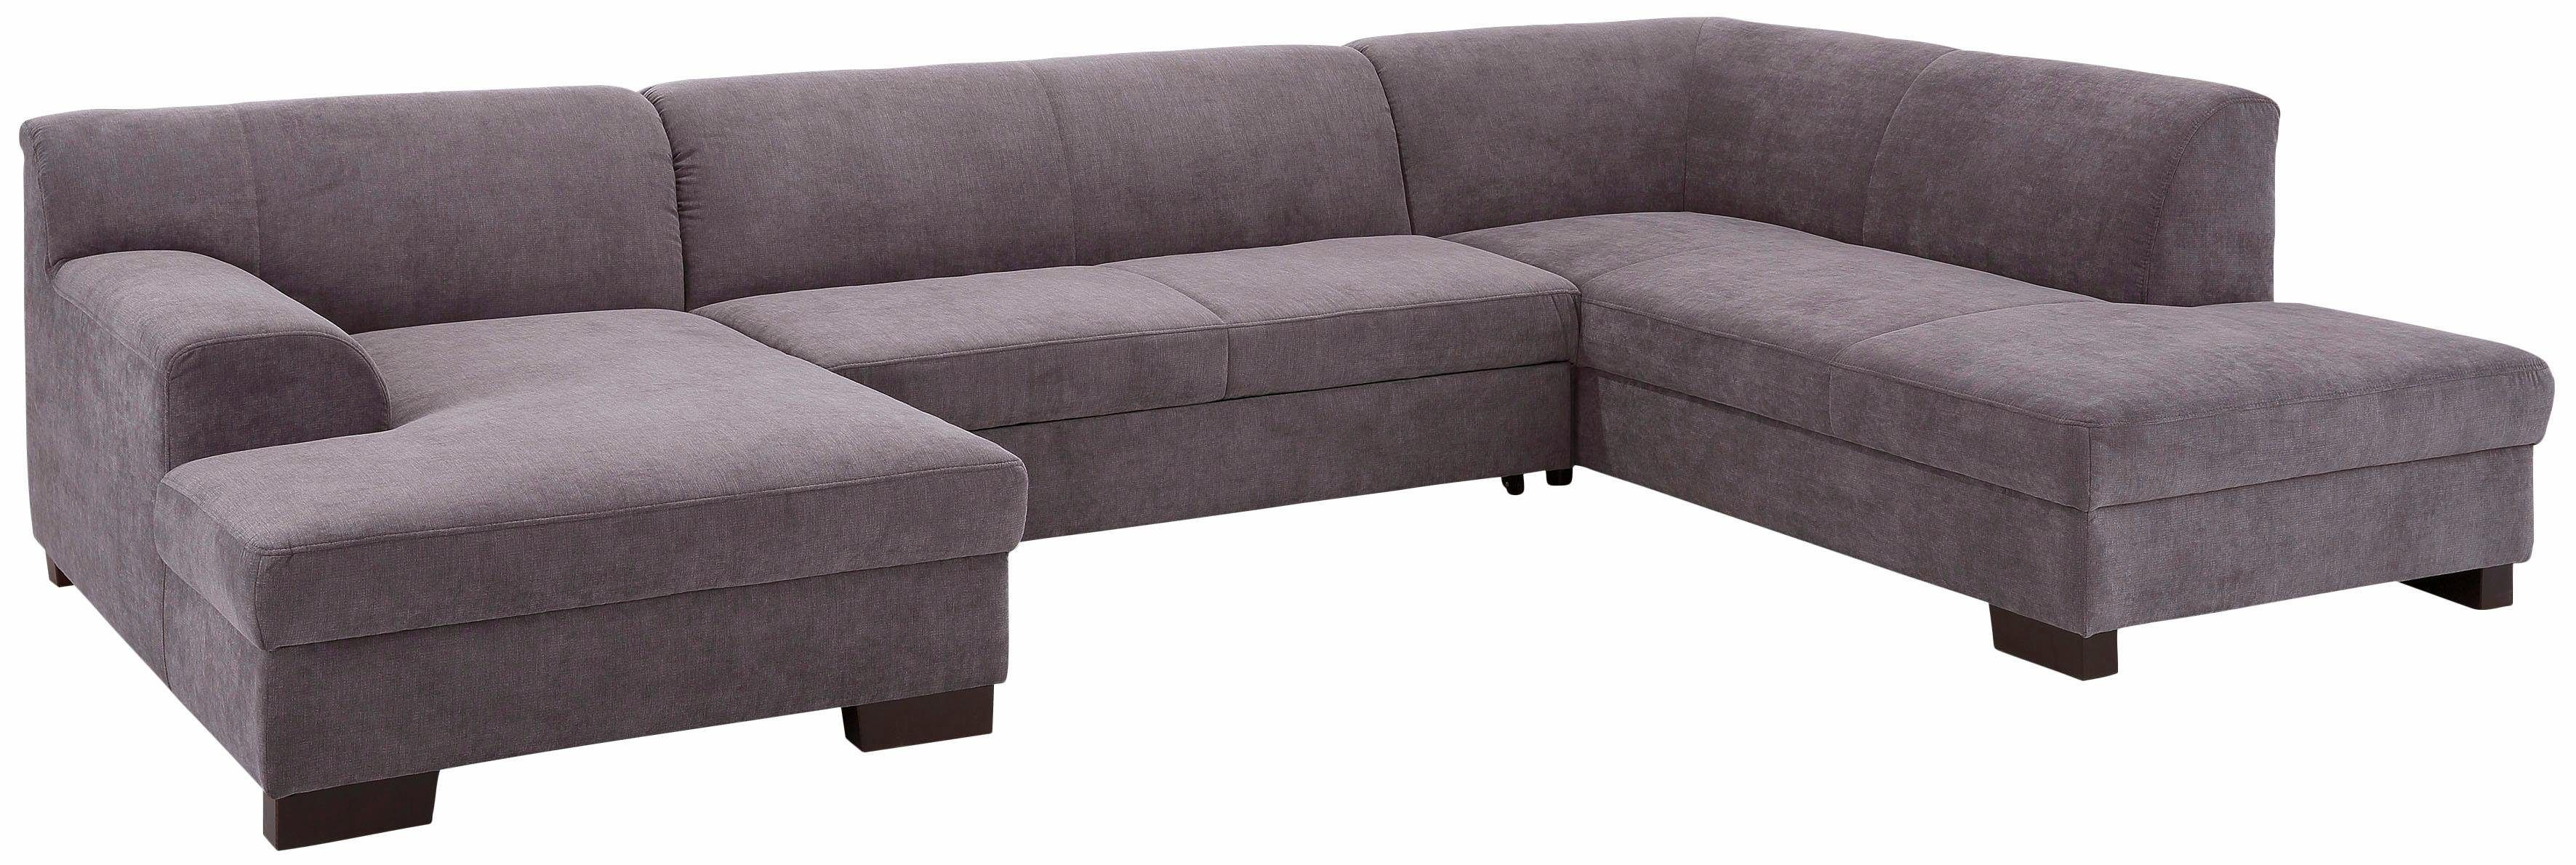 Couch Hocker Schwarz Best Echtleder Couch Schwarz Polster Sessel Couch Hocker Schwarz Simple Claudia Claudia Xxl Mit